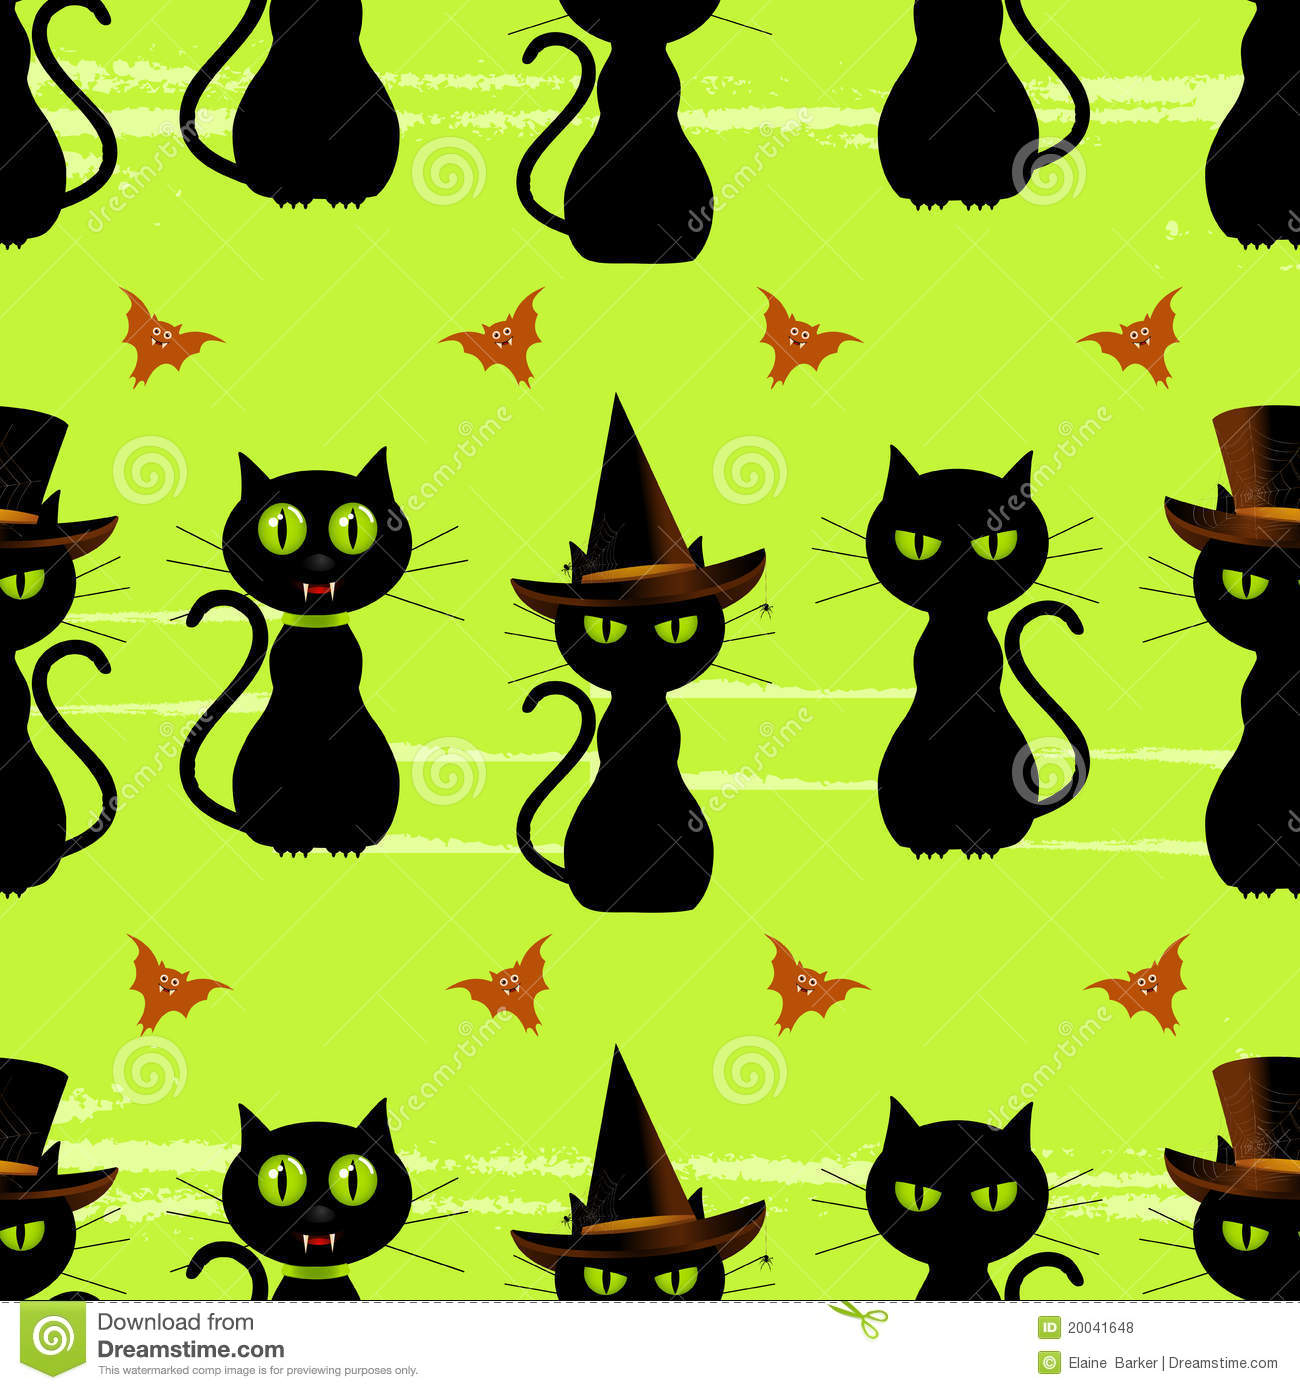 Halloween Black Cat Seamless Background Stock Vector ...